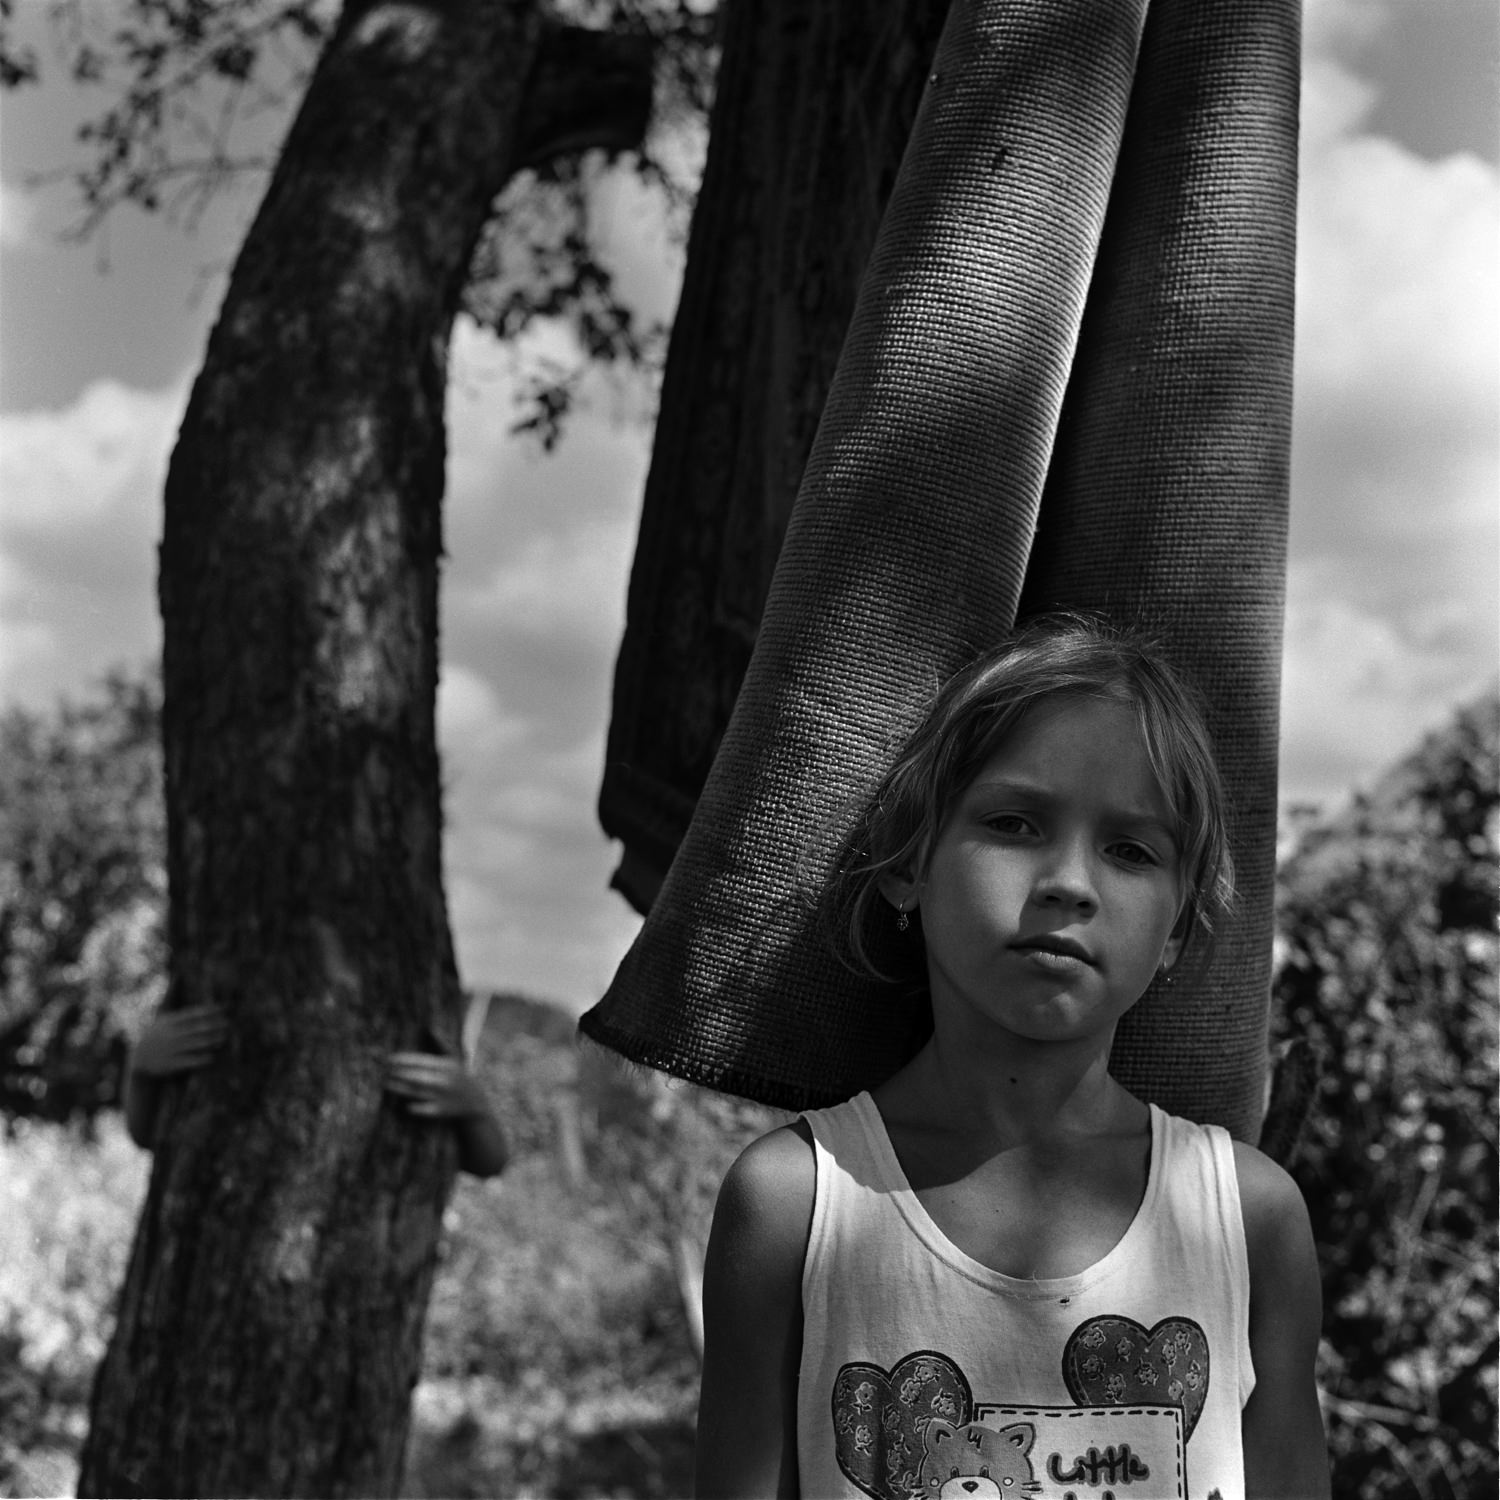 Black and white portrait photo of young girl standing before drying old carpet in backyard with a boy hiding behind tree